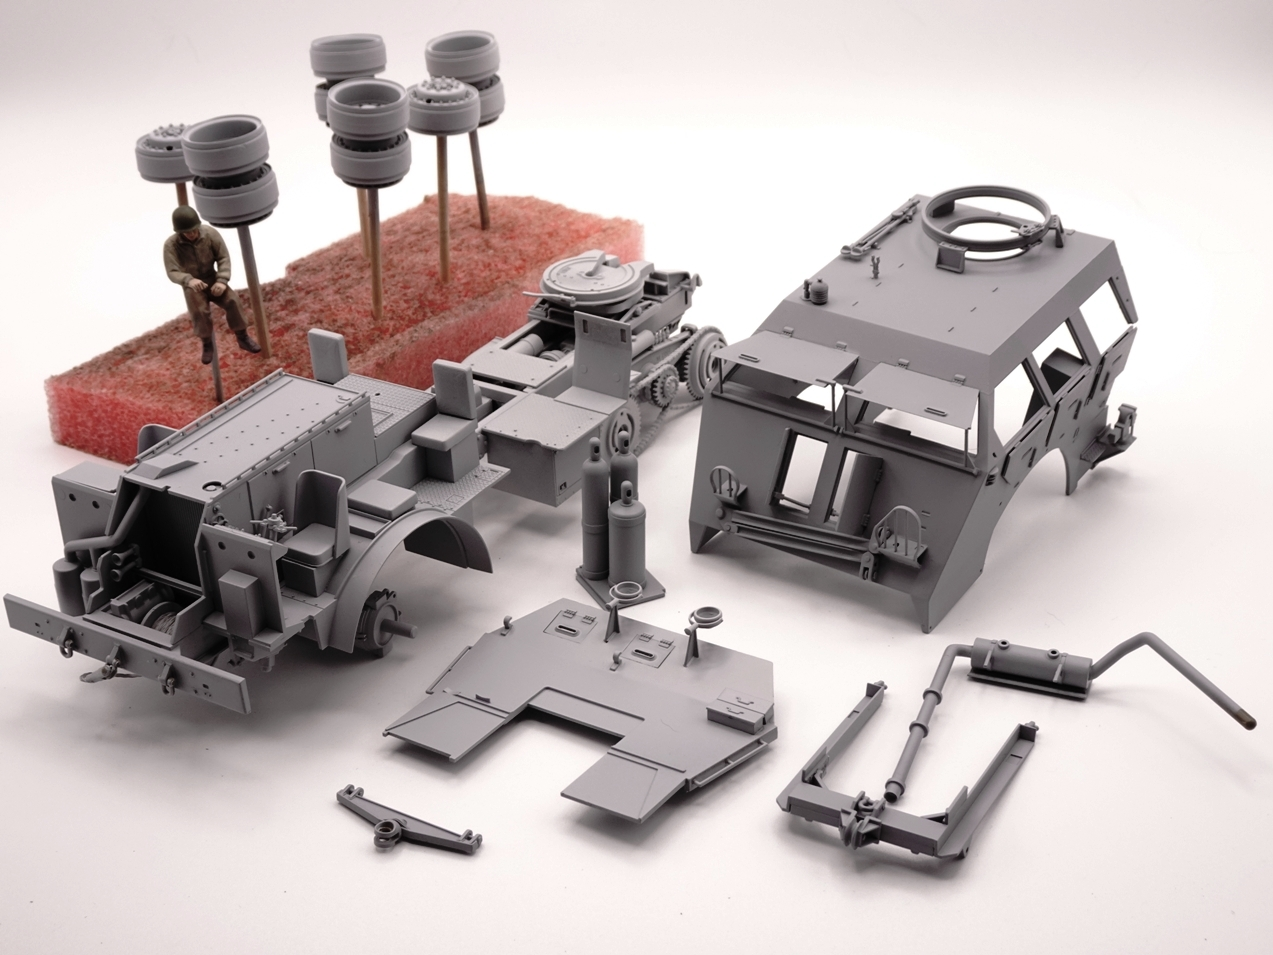 [Tamiya 1/35] M26 Armored tank recovery vehicle réf. 35244 - Page 2 M26-2709-1